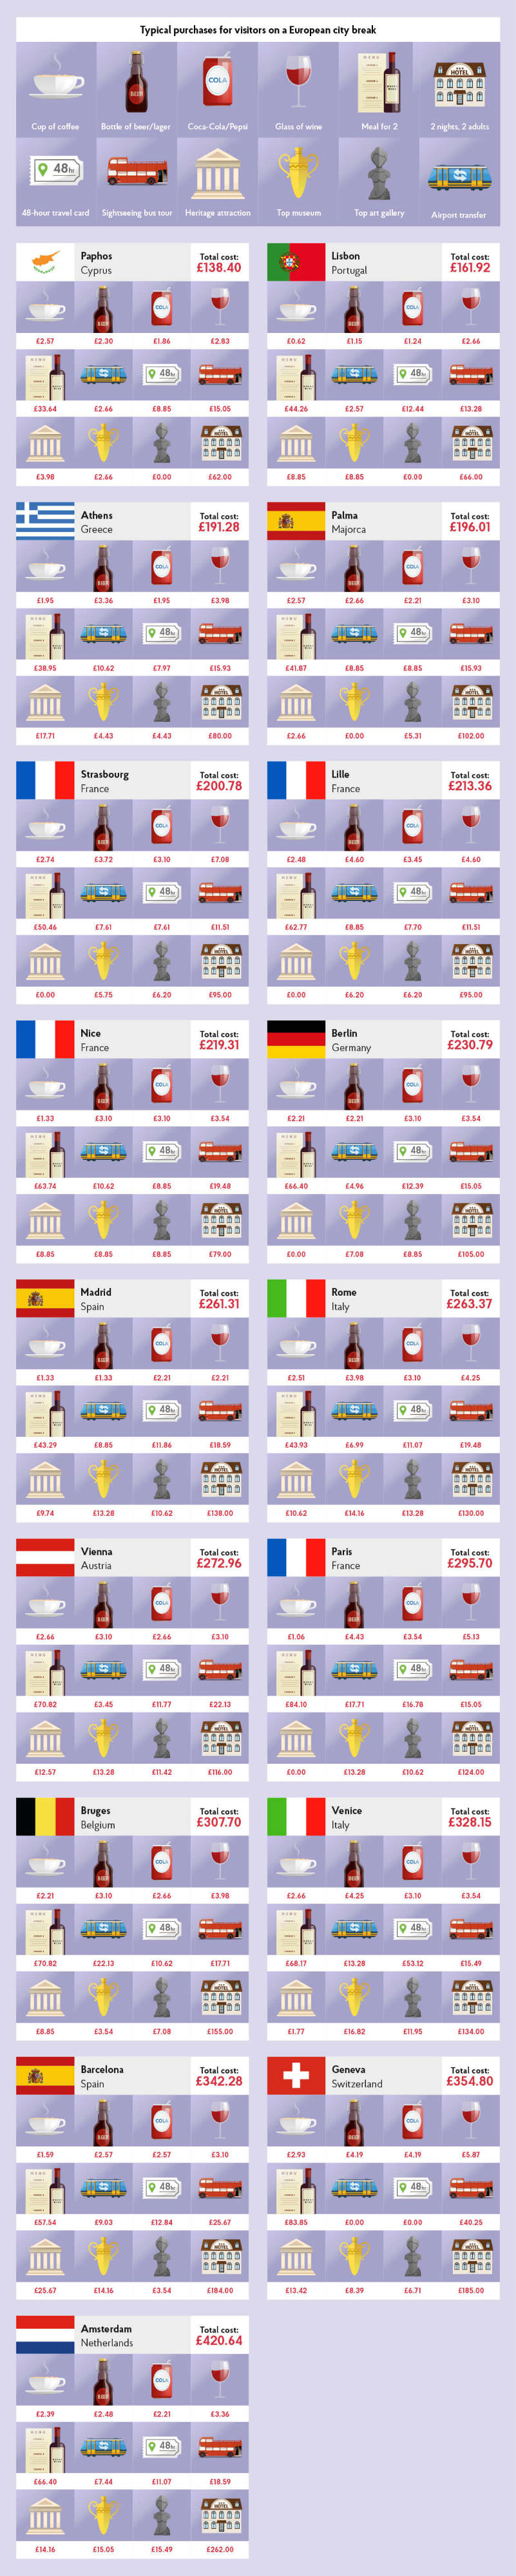 West Europe City Costs Barometer 2017